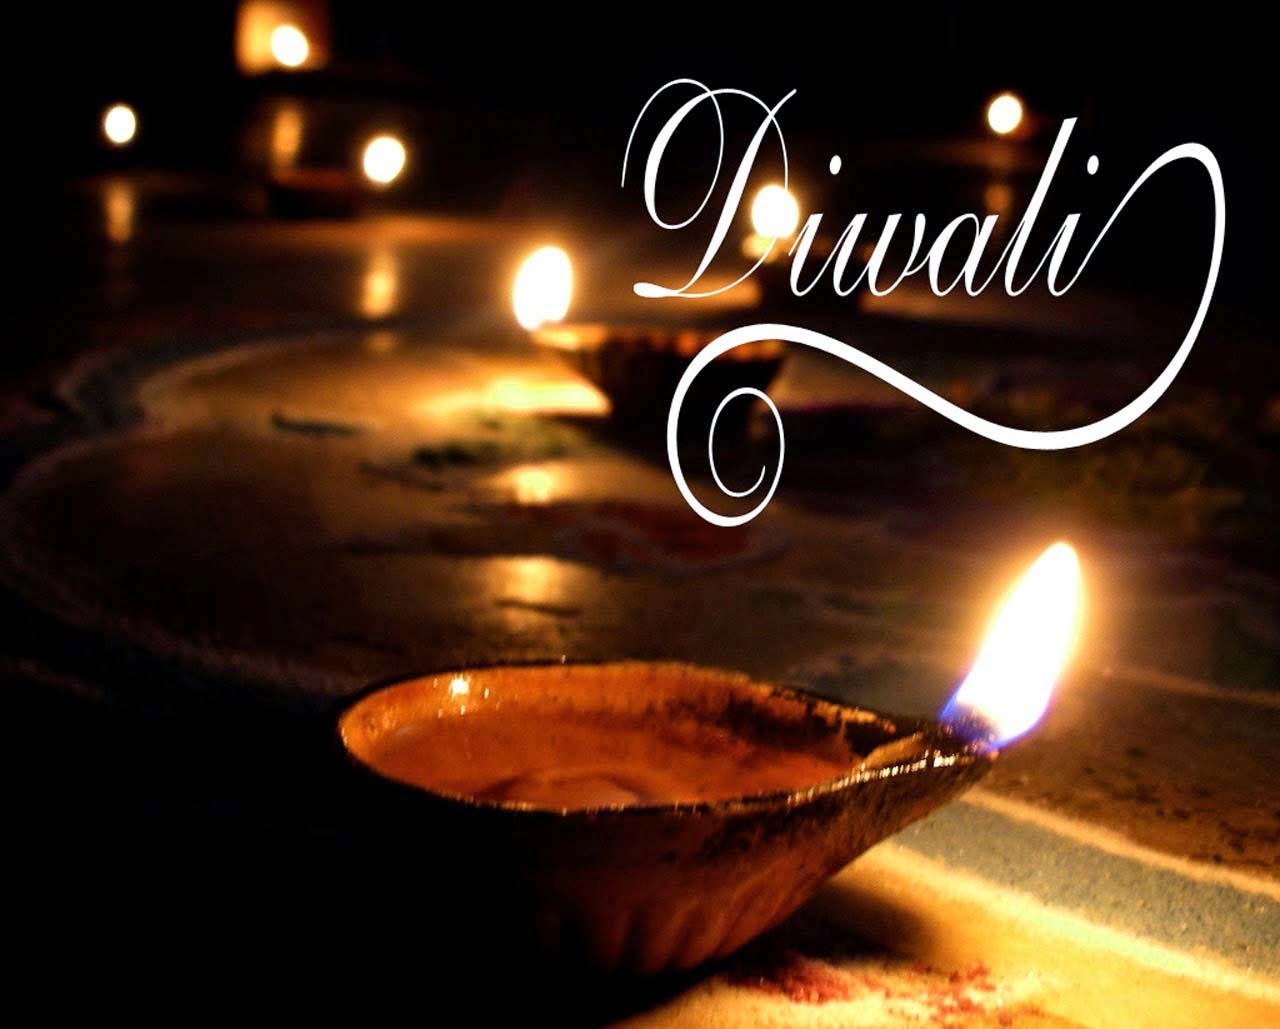 Amazing Wallpaper Love Diwali - diya-deepavali-wallpaper  You Should Have_905145.jpg